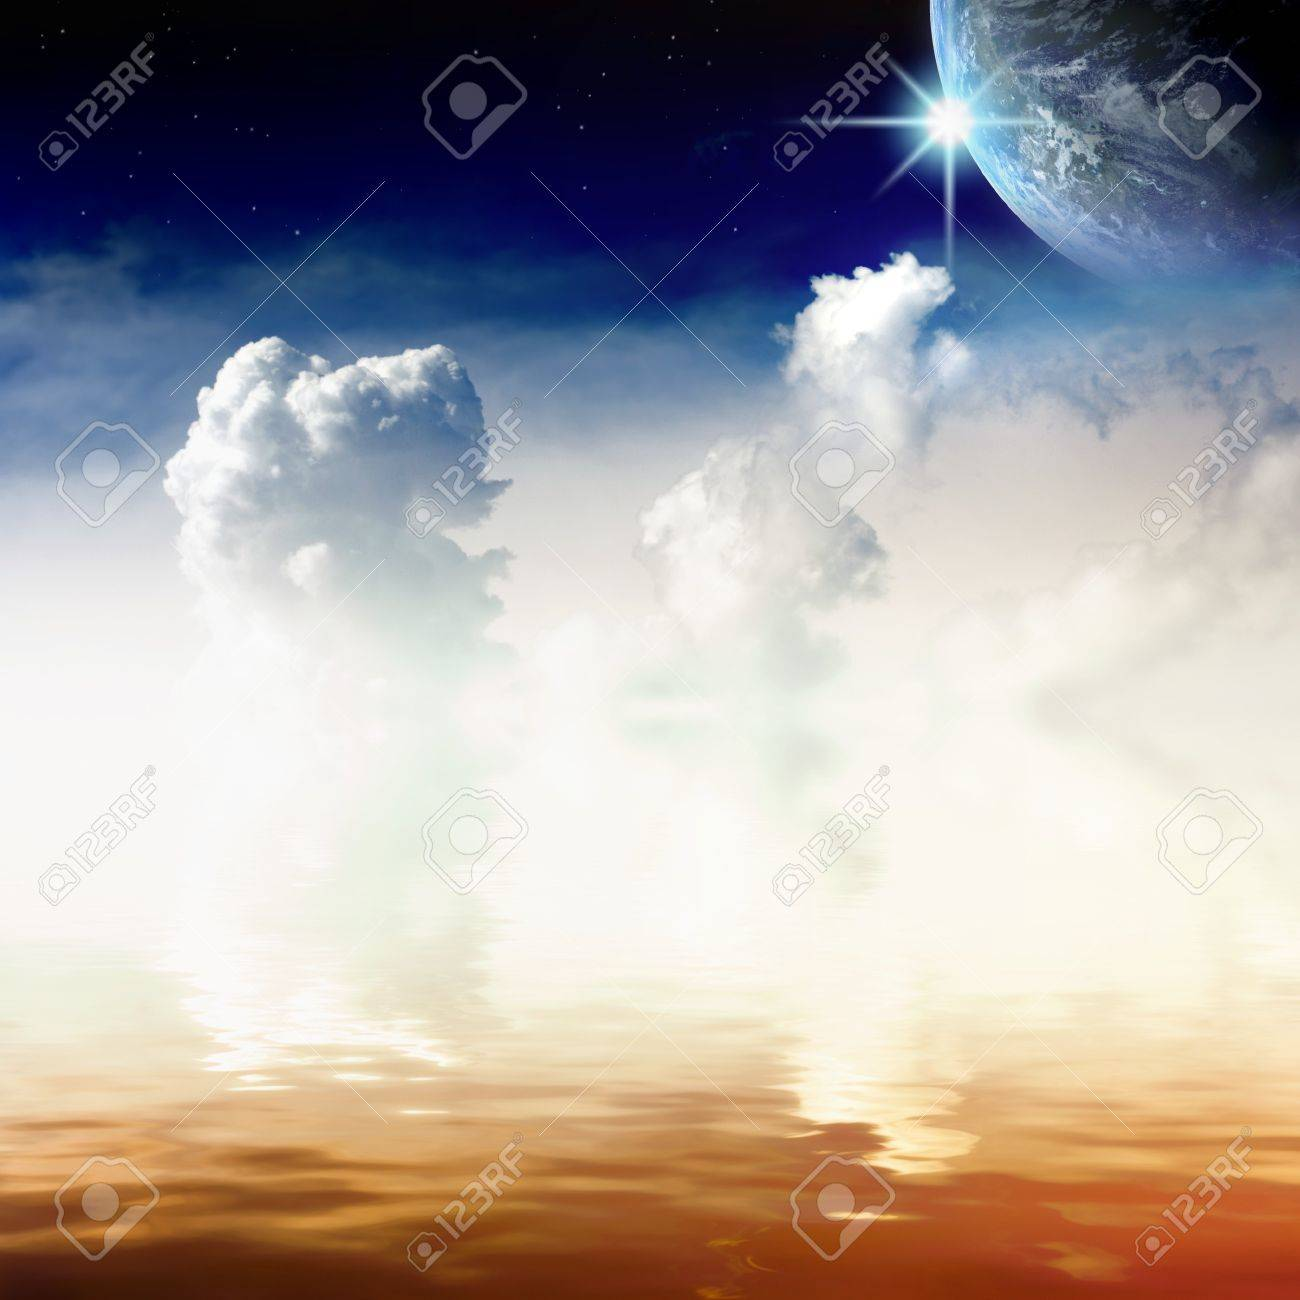 View From Heaven - Idyllic Peaceful Place Stock Photo, Picture And ...